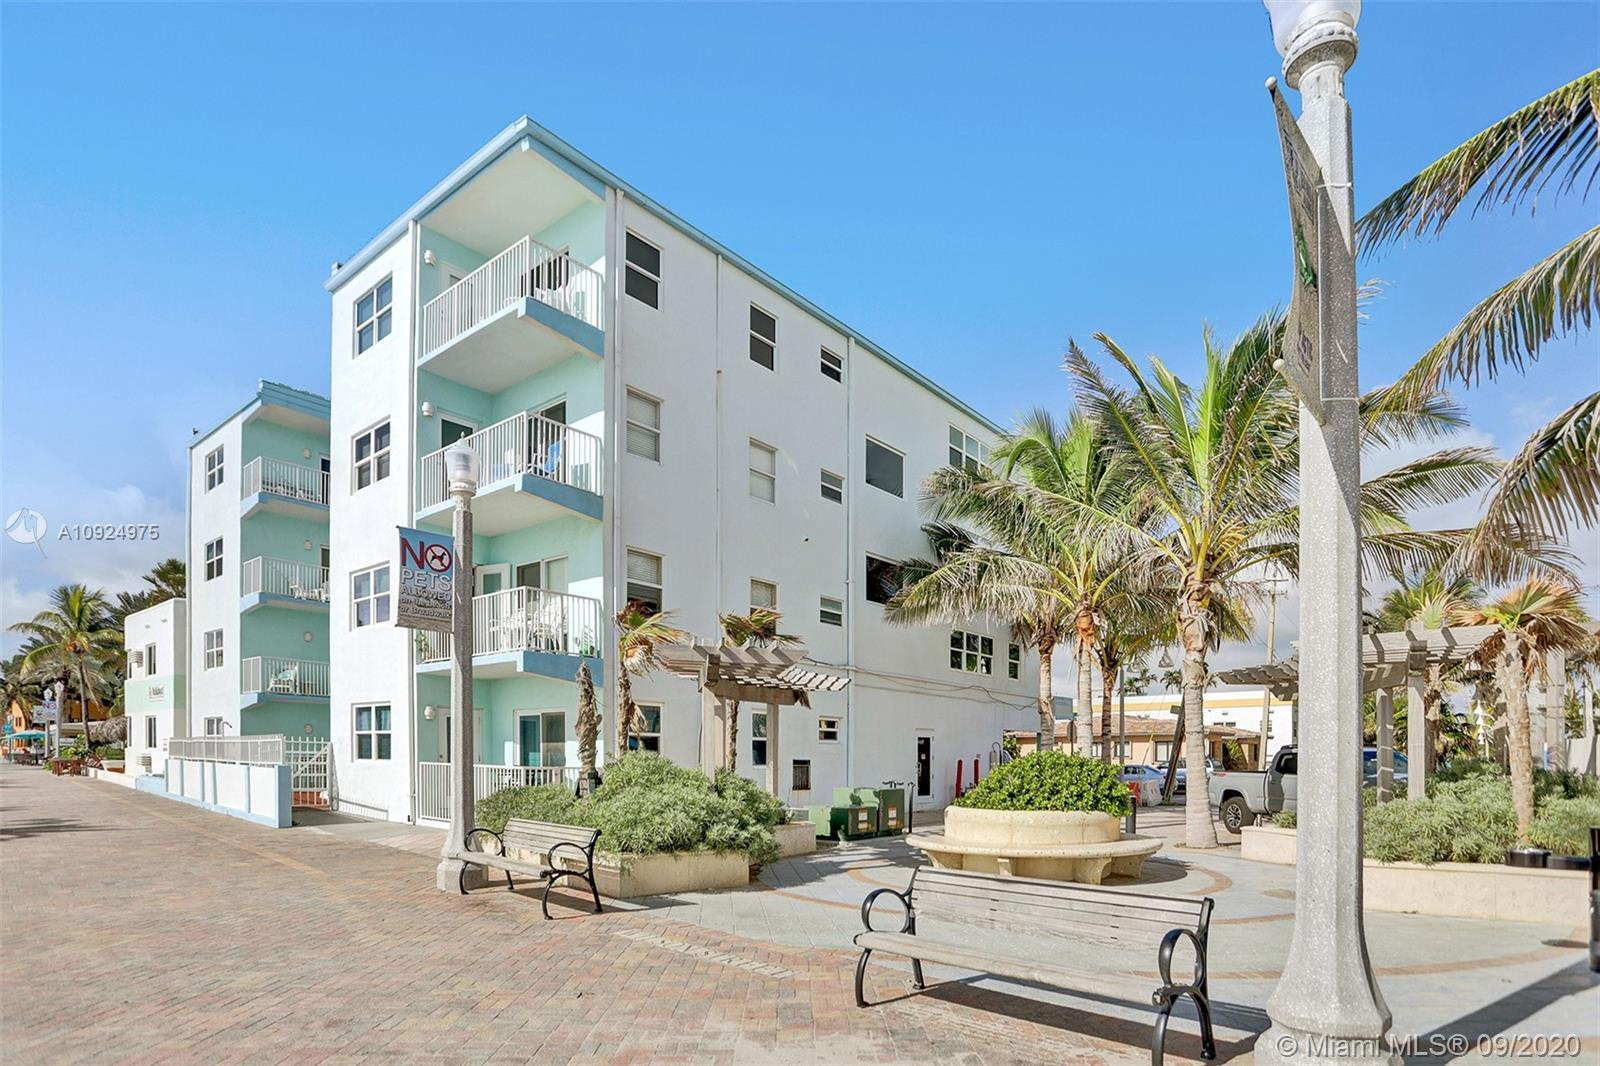 Live like a VIP with a front row seat looking right at the Atlantic ocean! Located directly on Holly